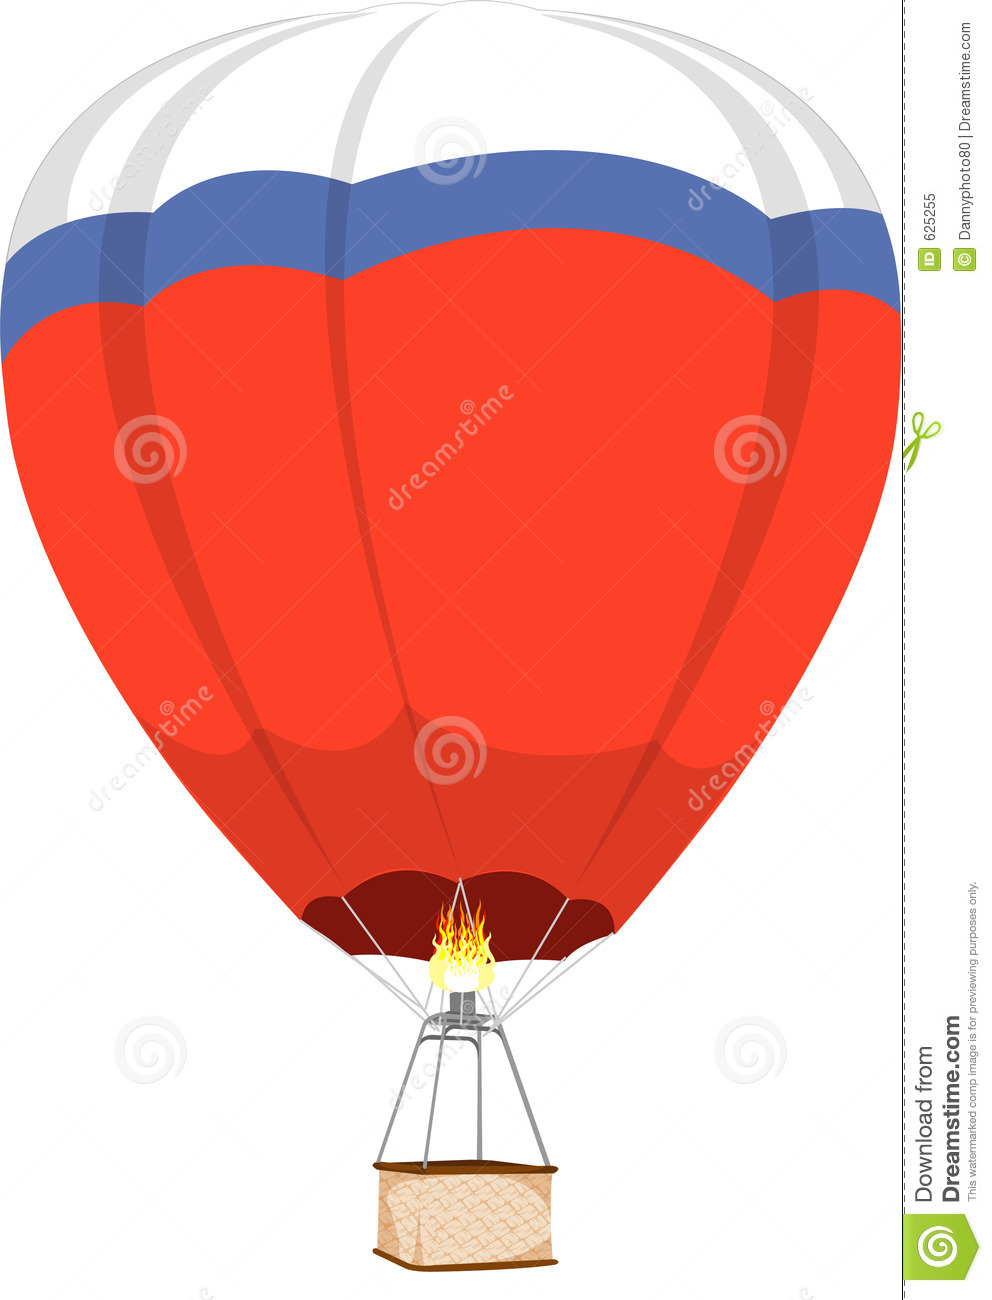 Panda free images . Clipart fire hot air balloon